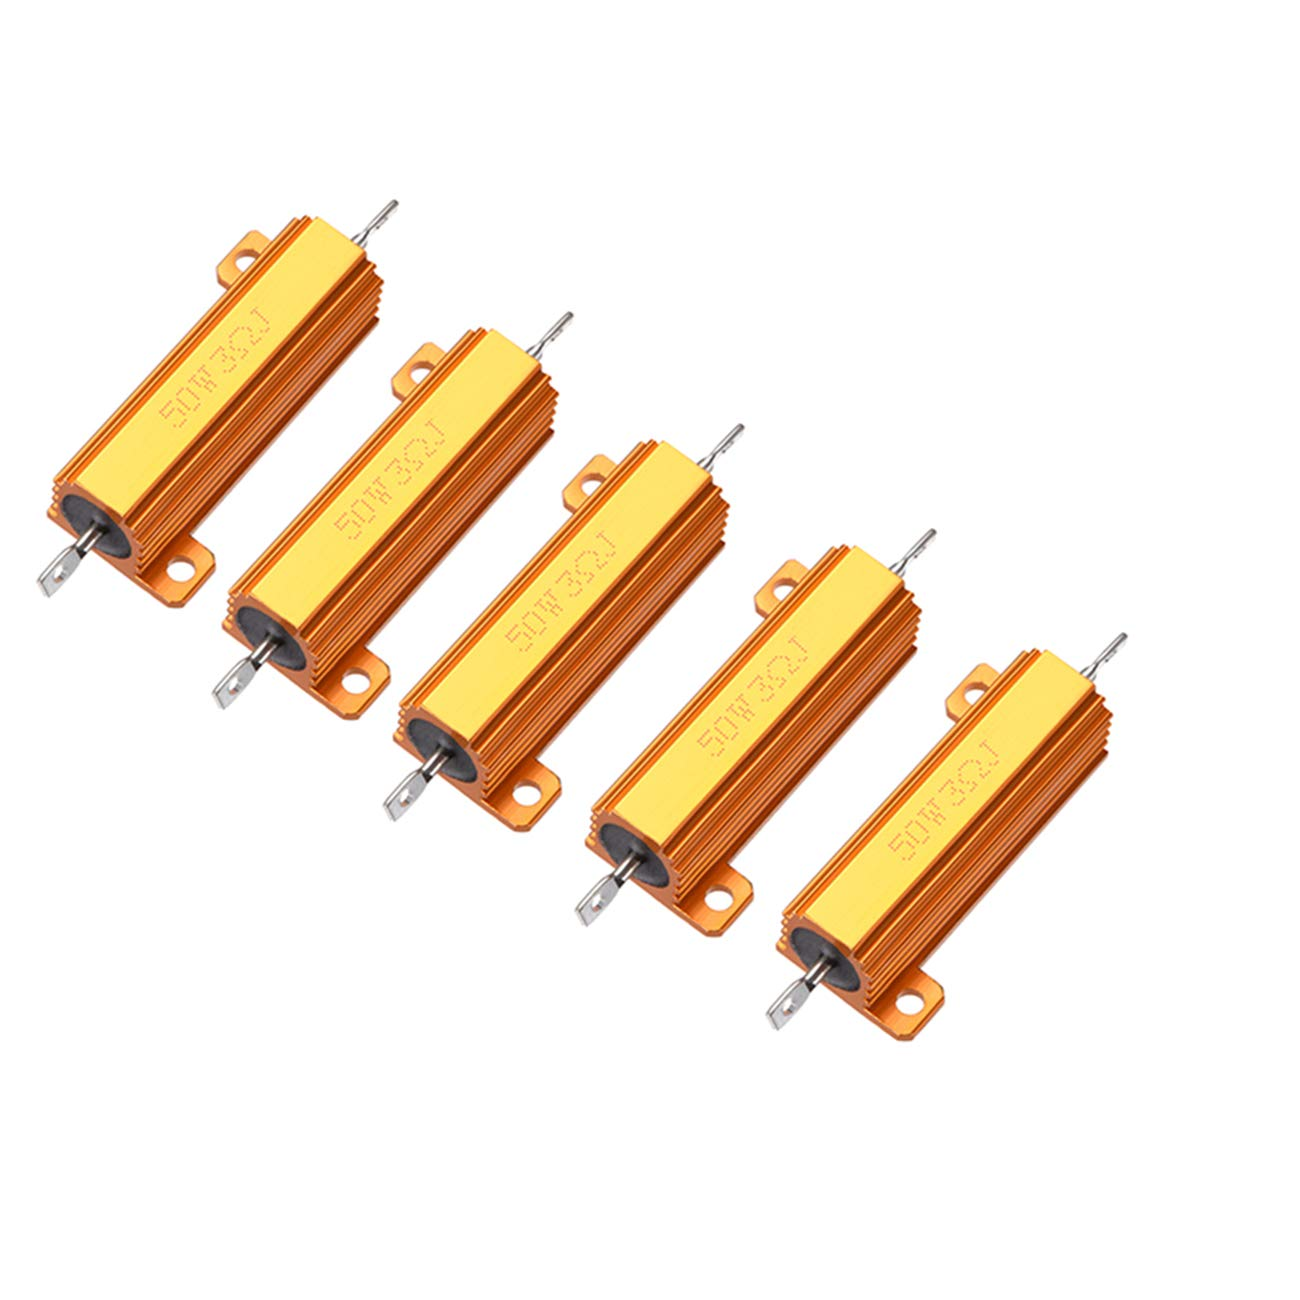 HLin 5Pcs 3 OHM 50W Aluminum Housed Wire Wound Resistor Gold Tone